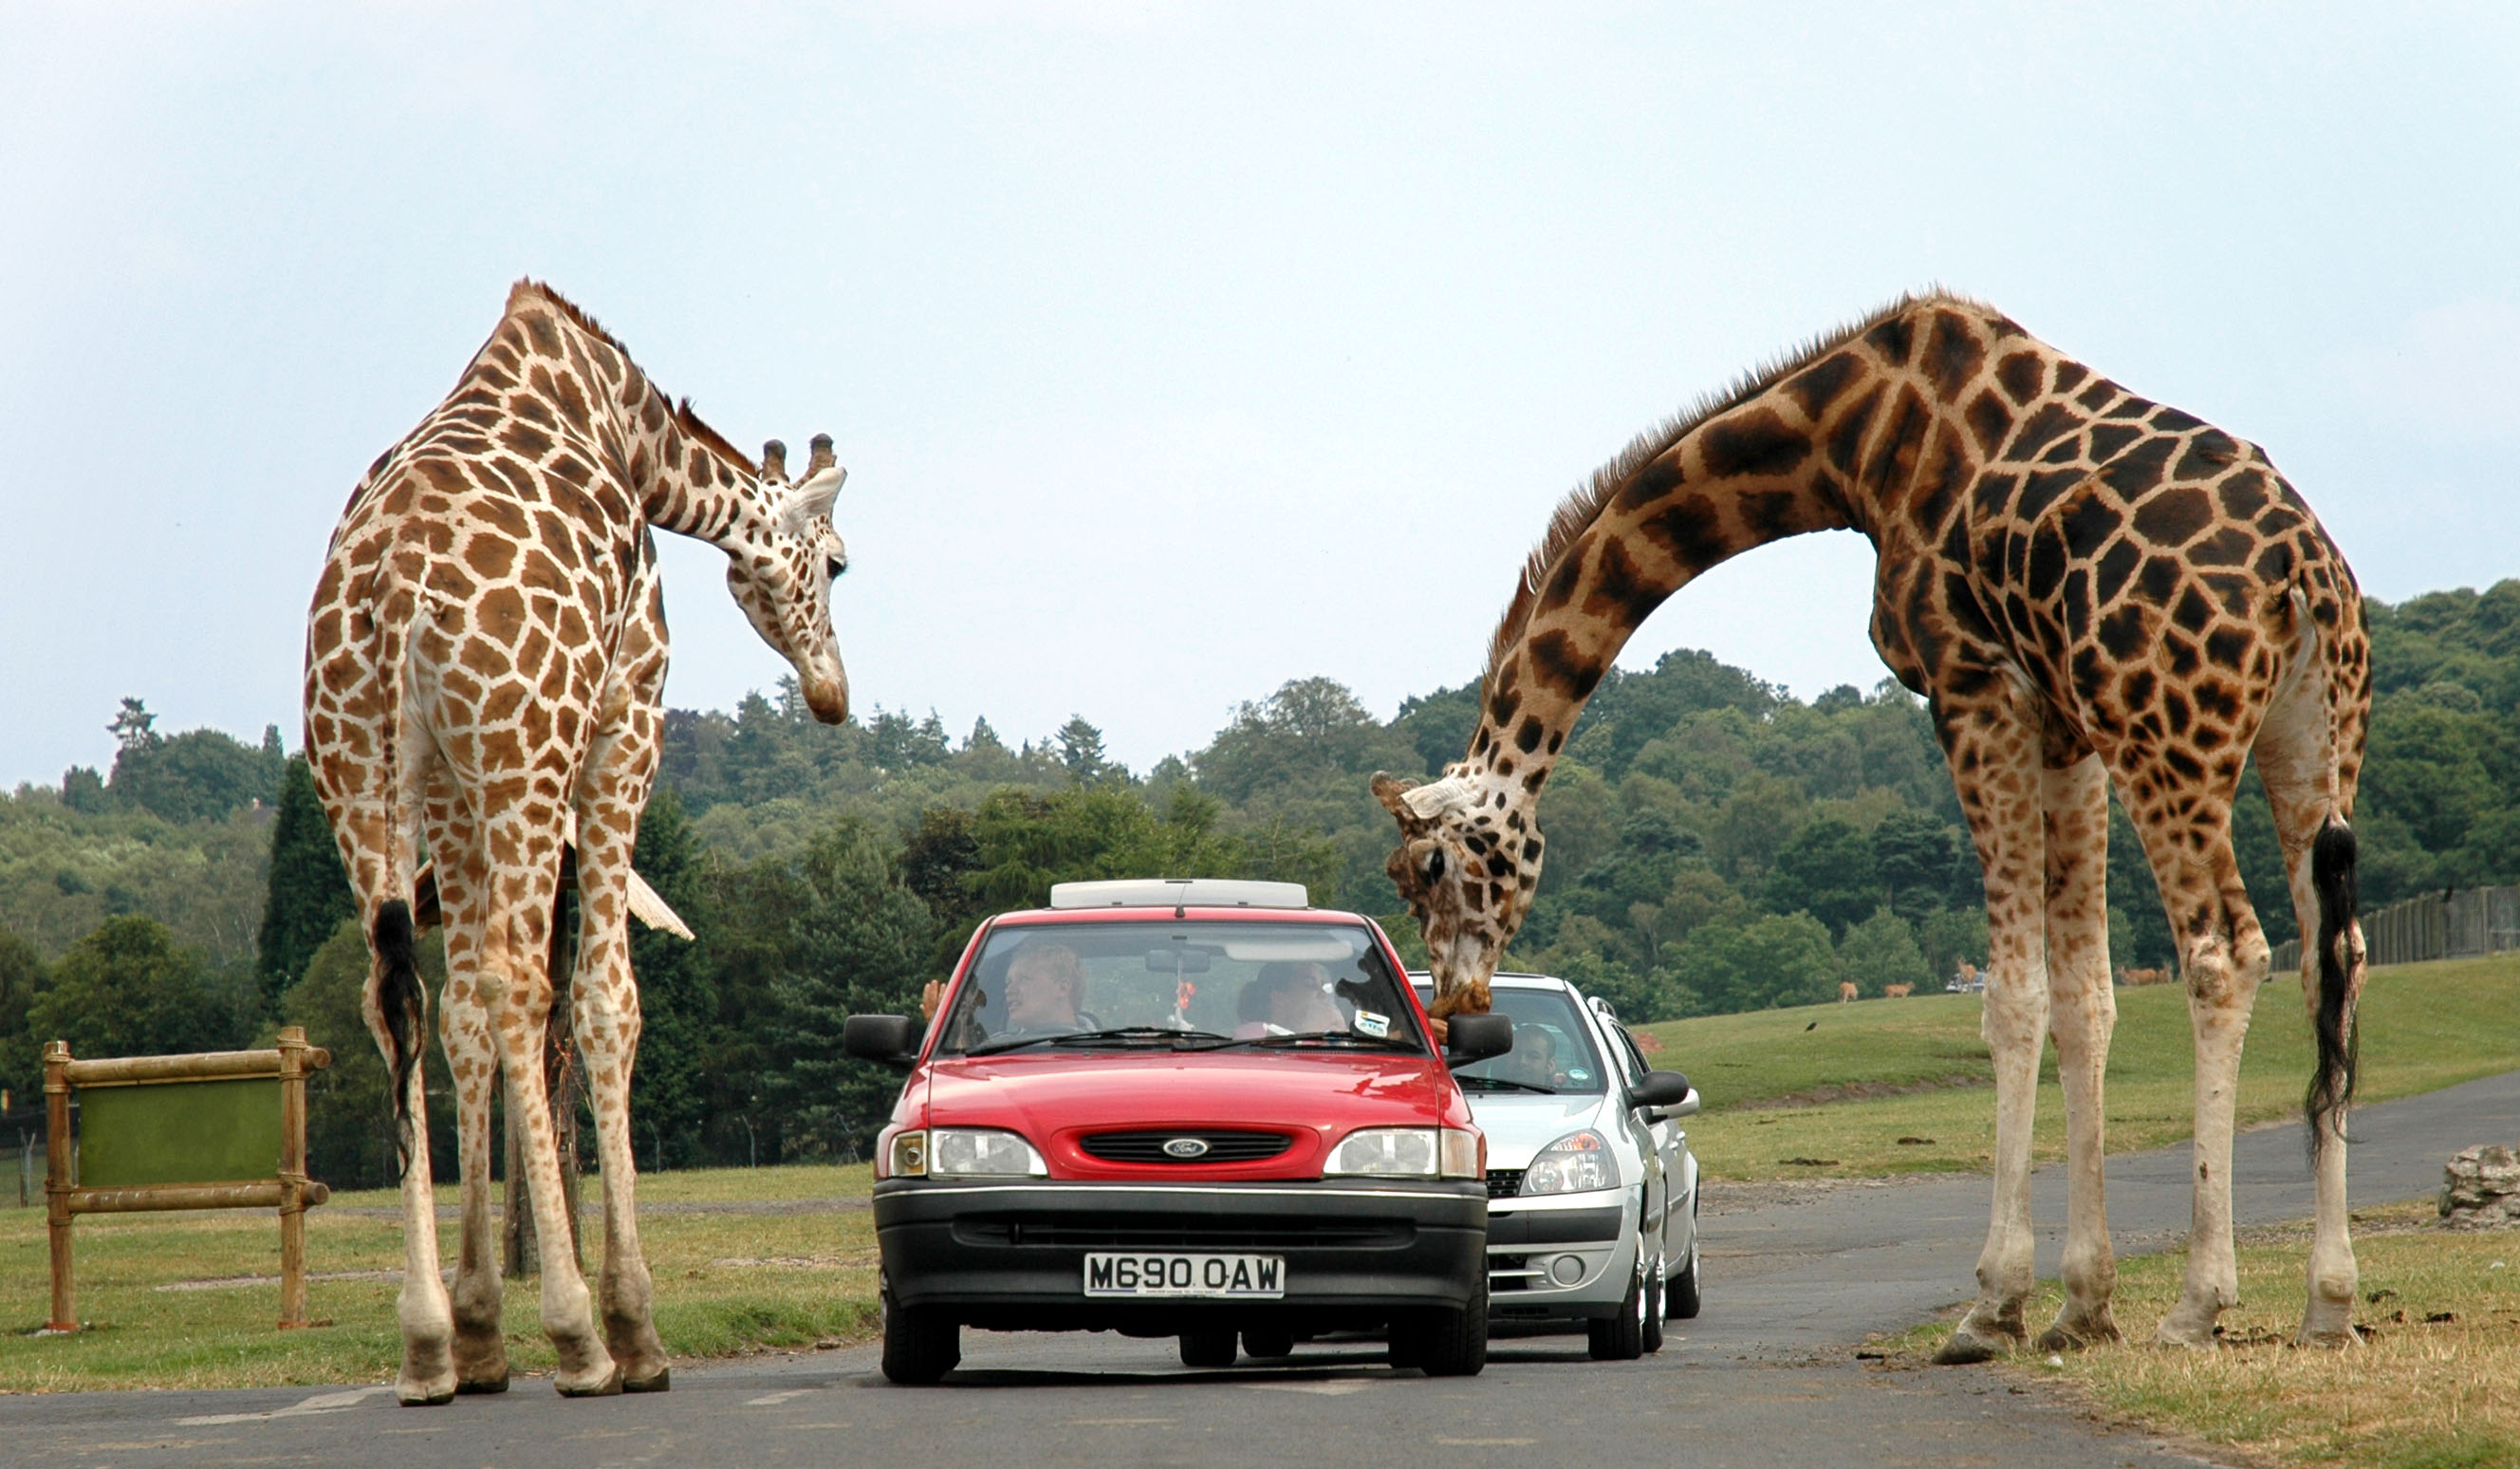 West Midland Safari Park Restaurant